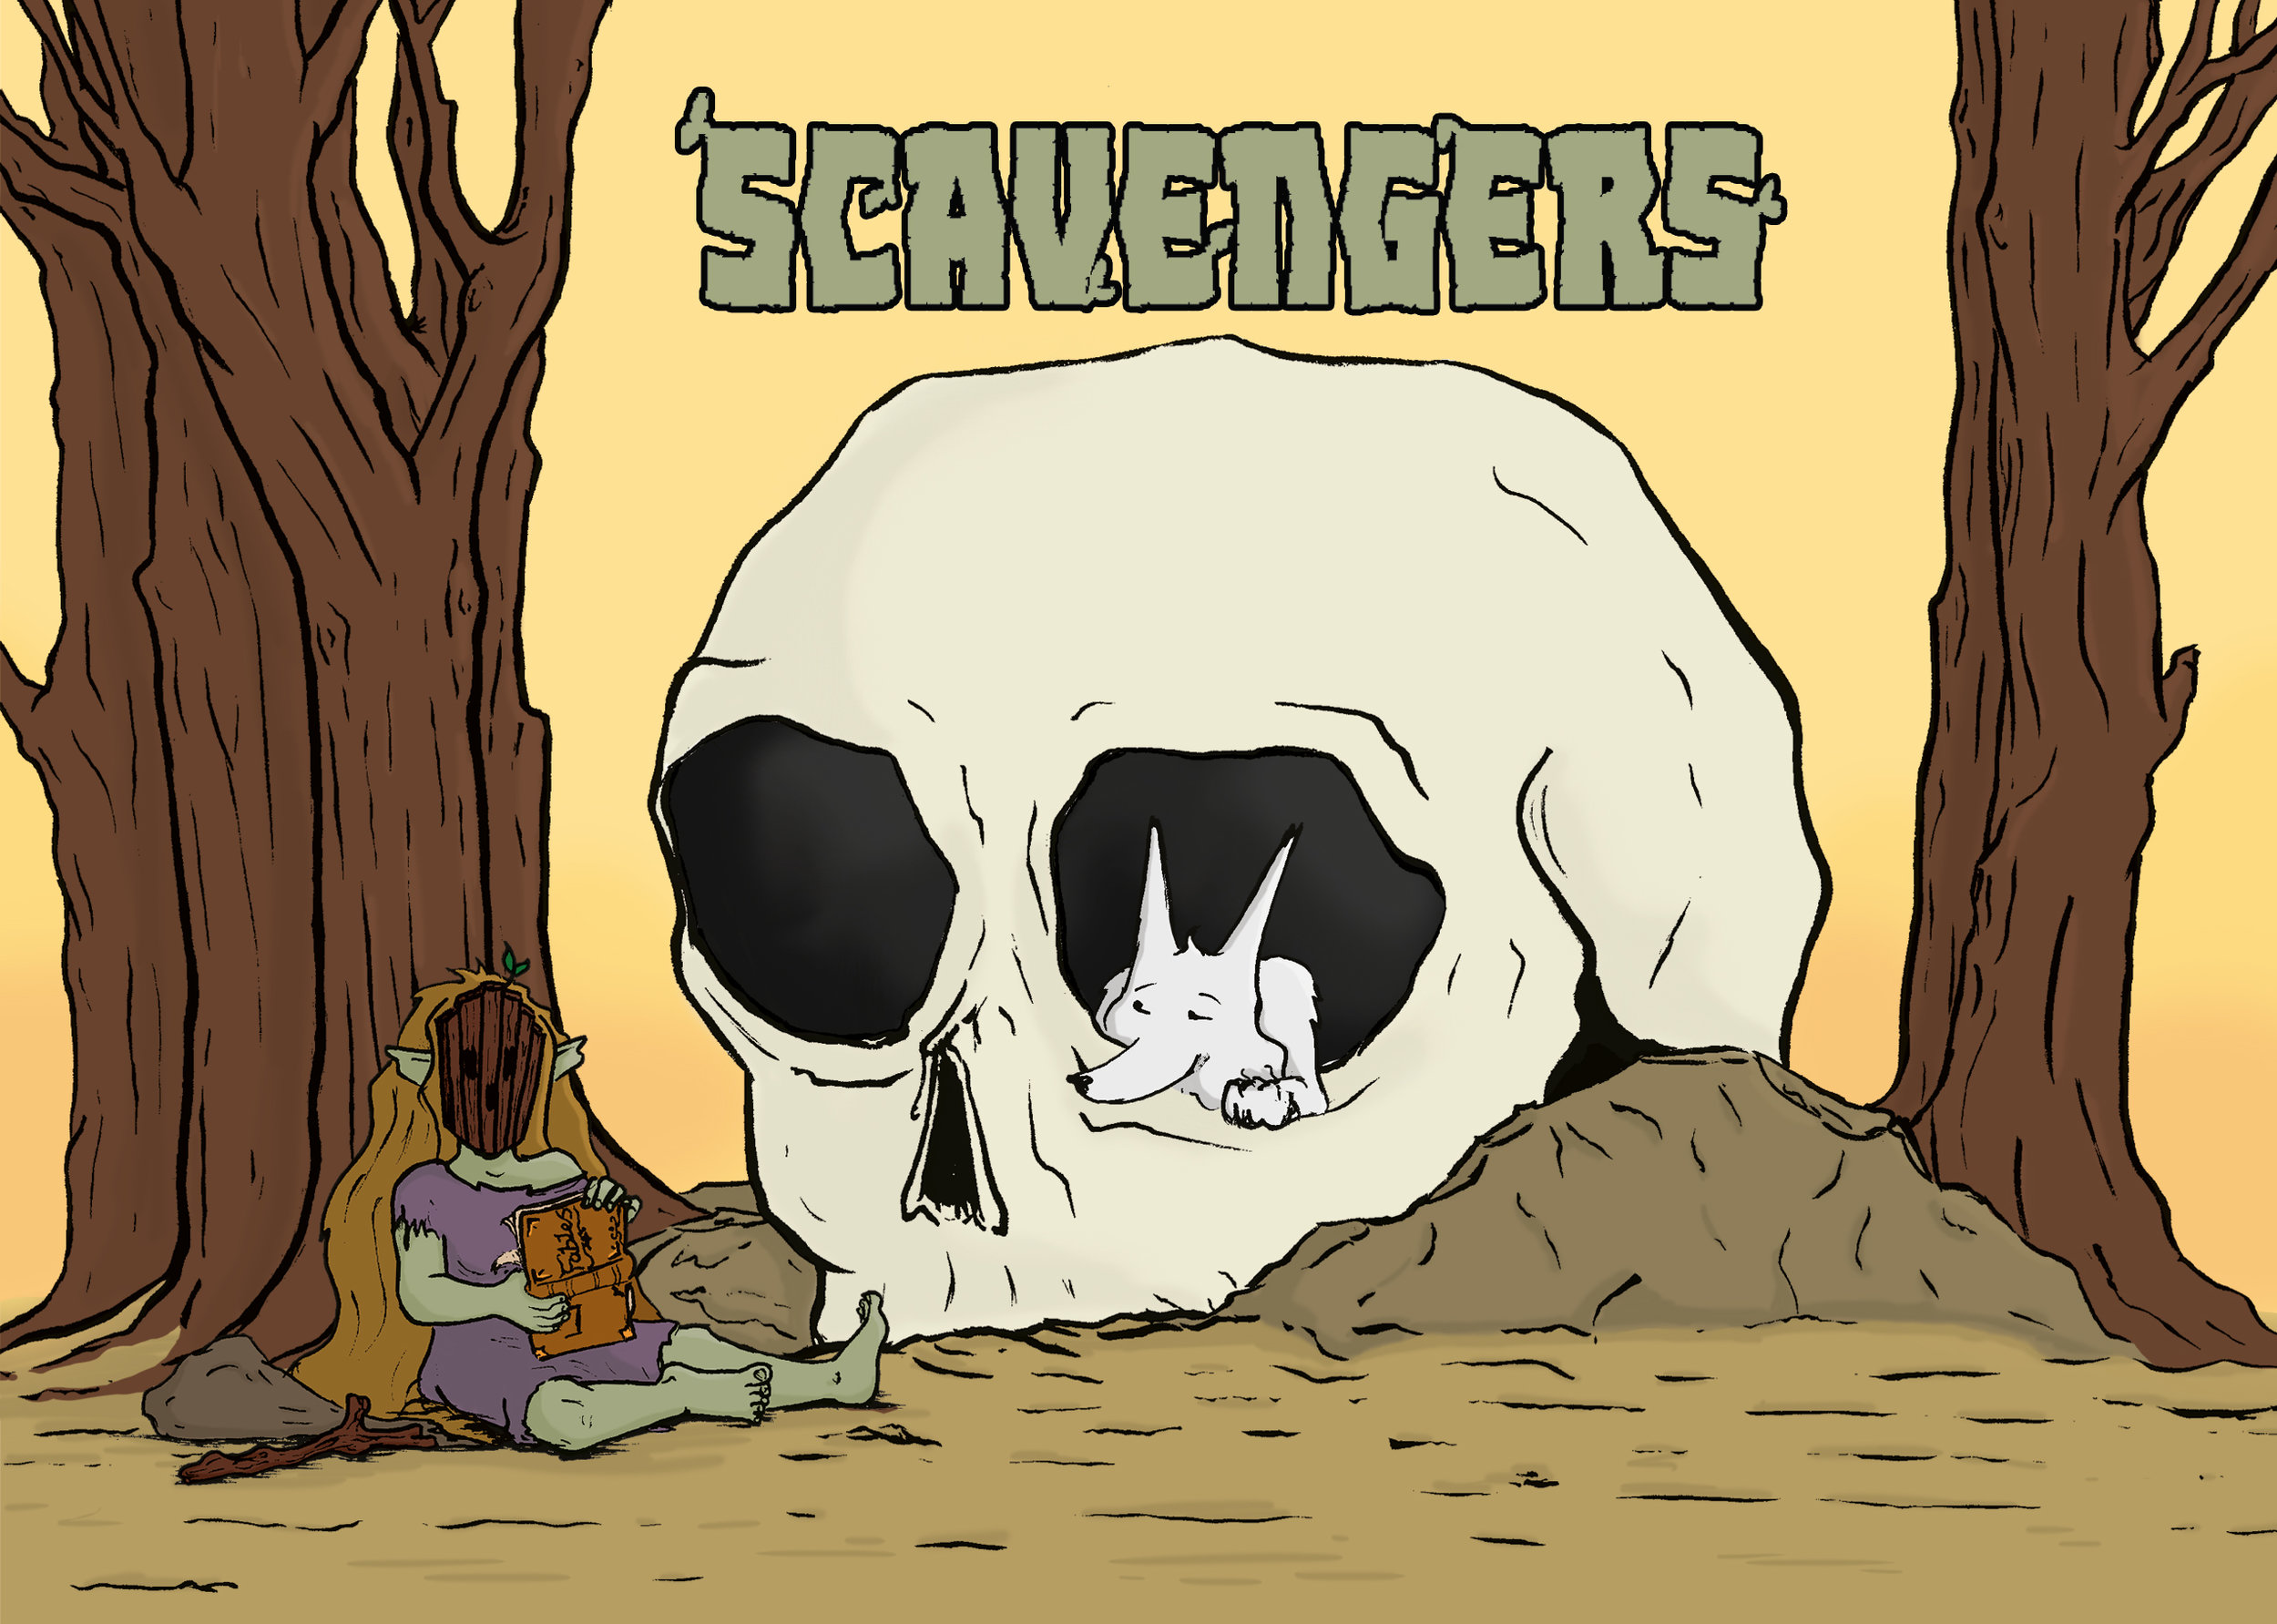 SAMMY WARD - Sammy Ward Draws is Illustrator of the spooky and whimsy. Writer and Illustrator of Scavengers, a fantasy adventure comic.WEBSITETAKES CARD PAYMENTS